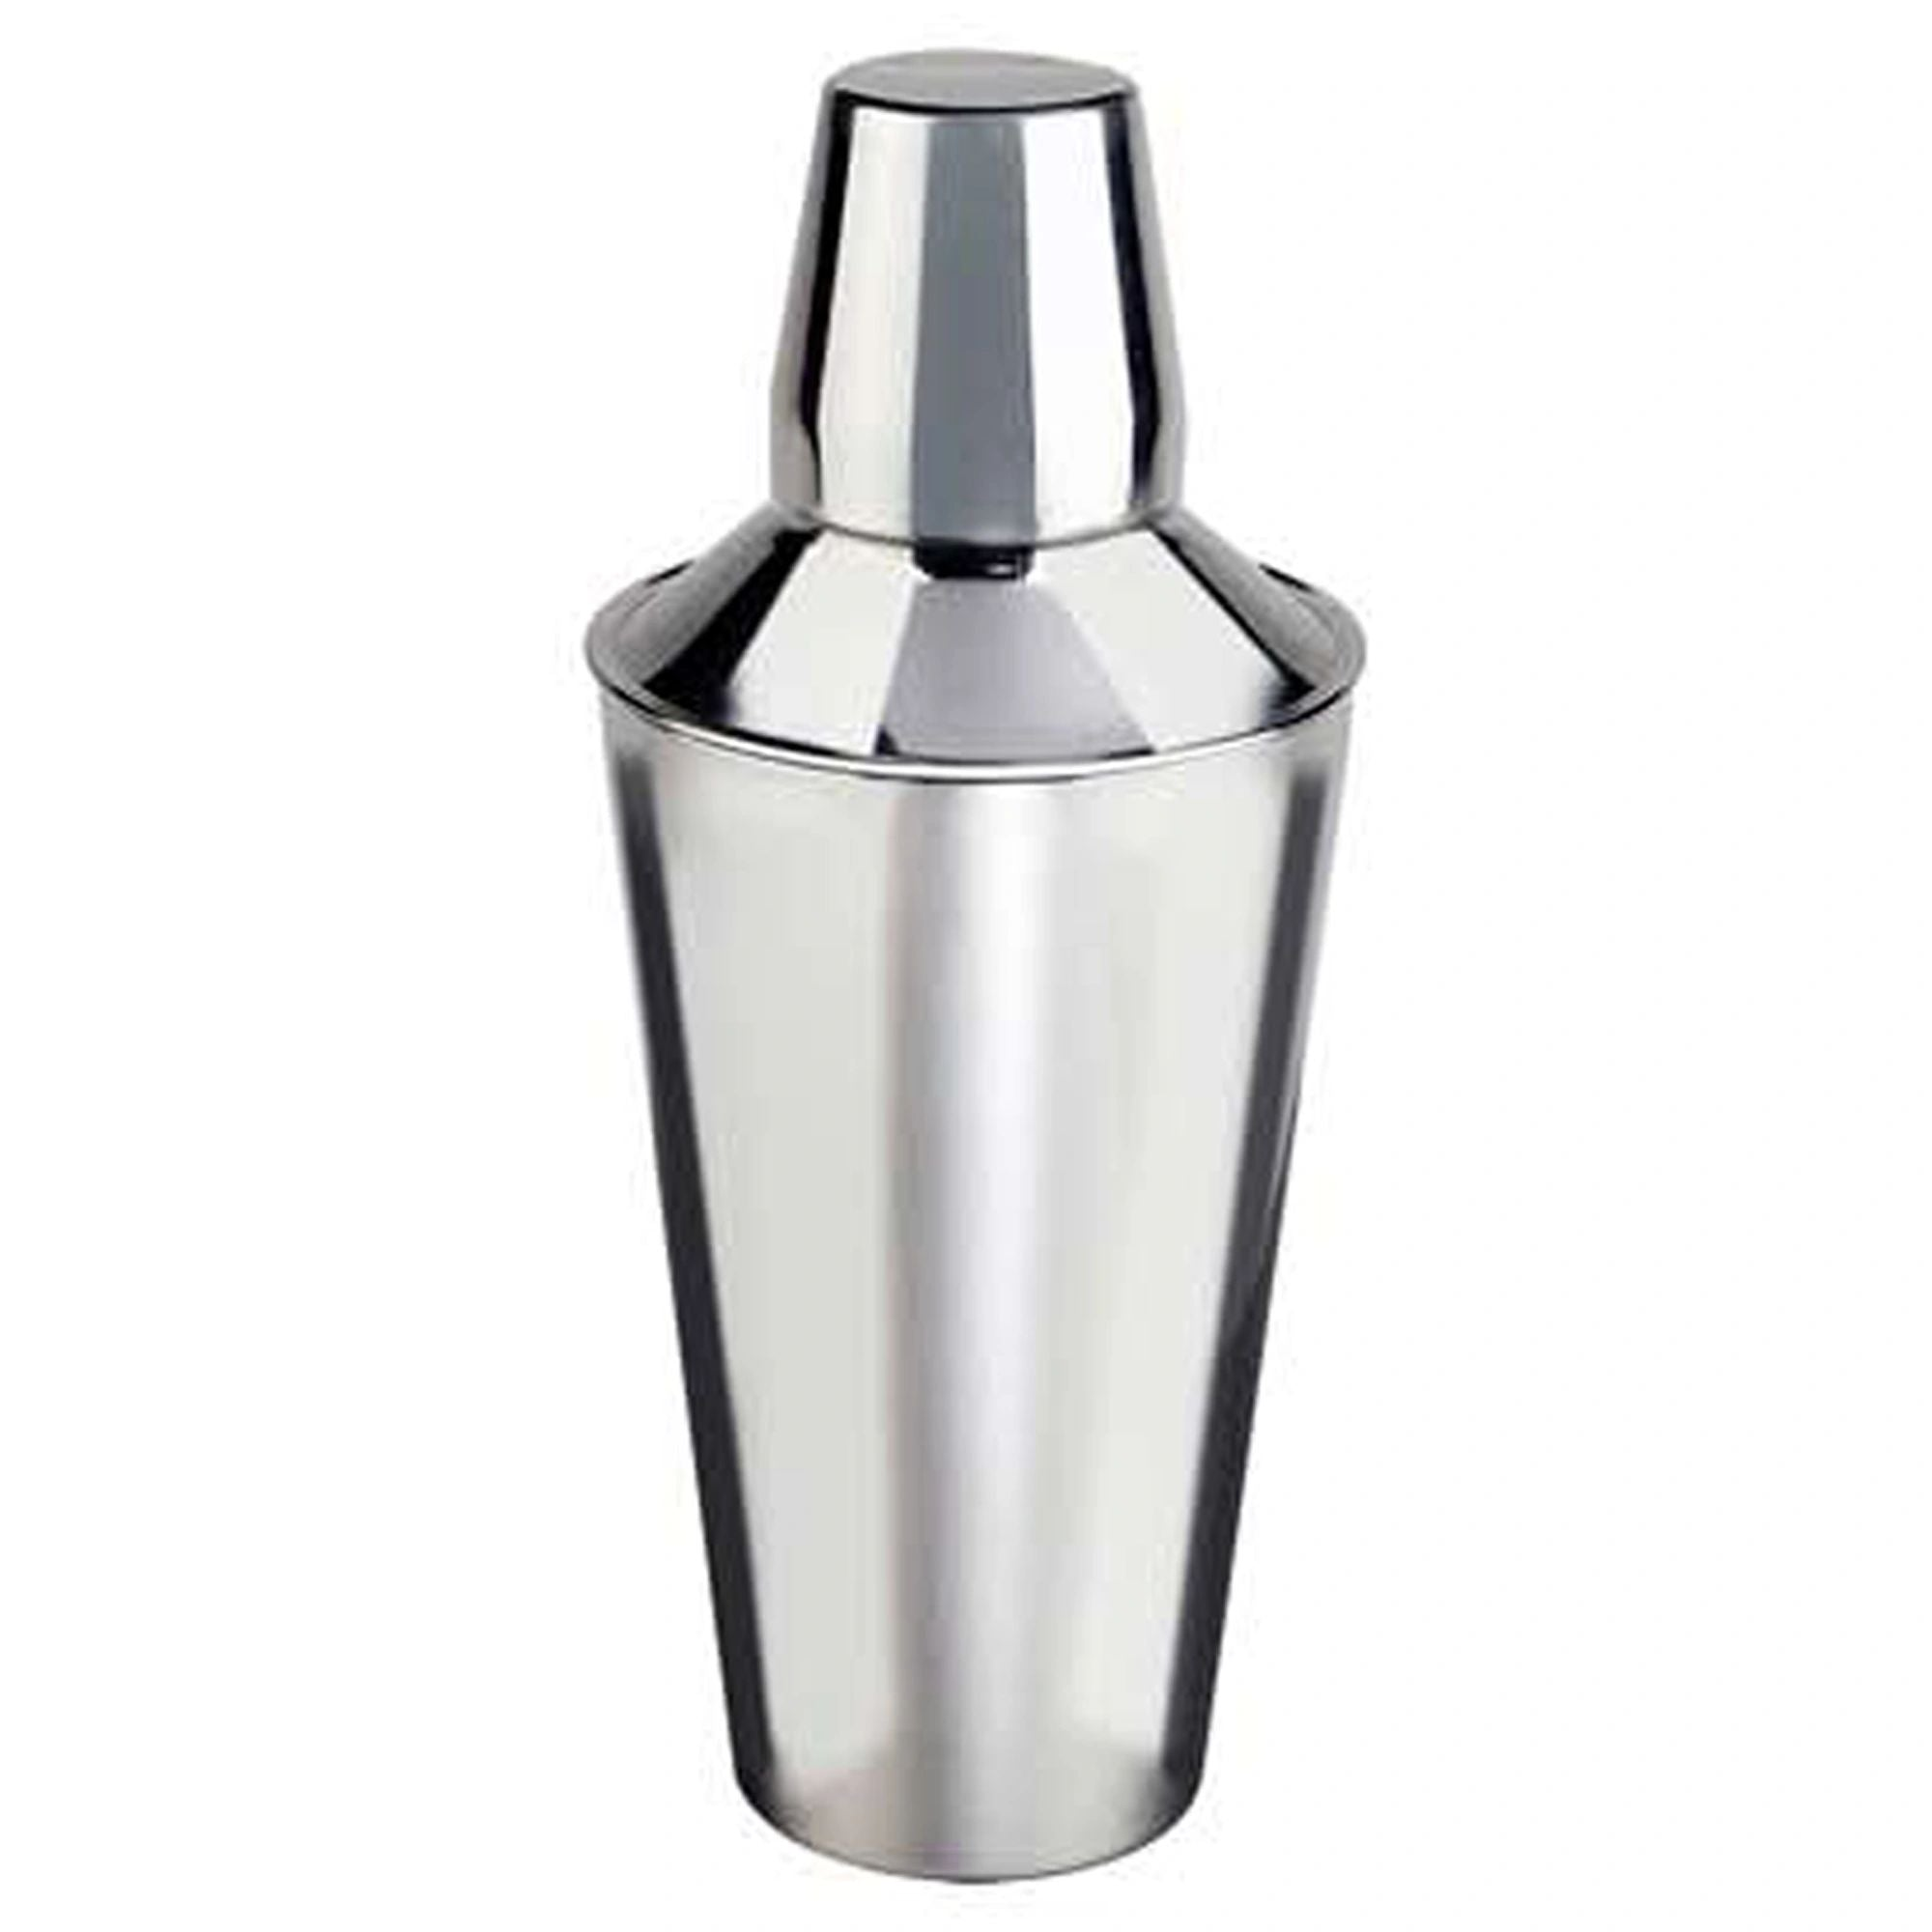 TG-CS-1 COCKTAIL SHAKER 28oz.